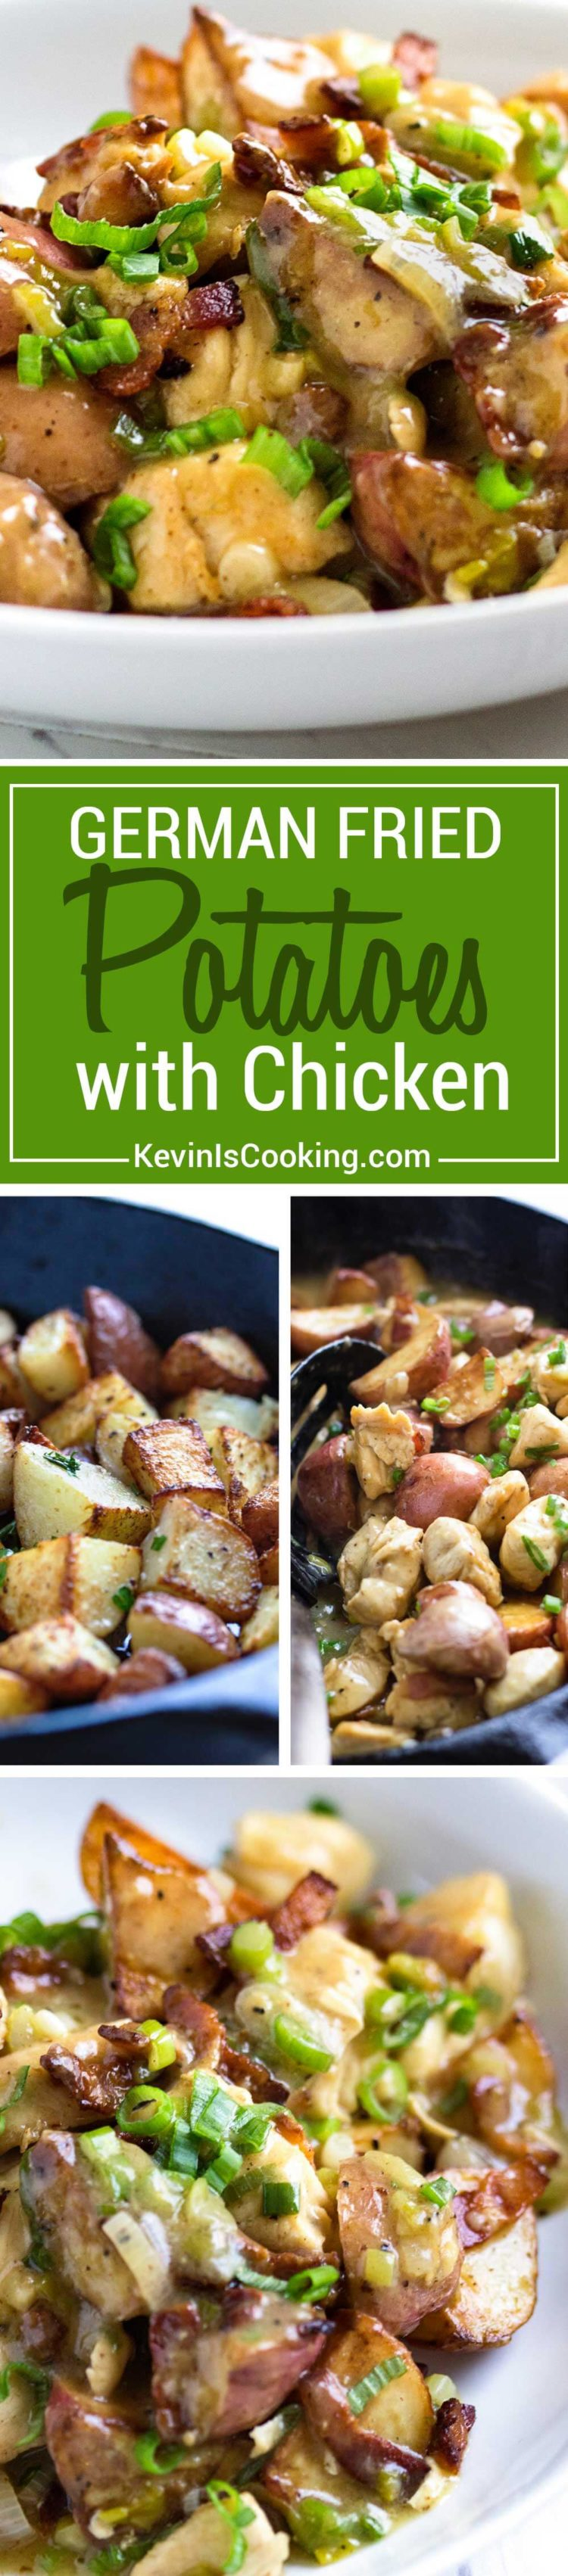 A twist to the traditional German fried potatoes, this dish mixes a tangy sauce, rotisserie chicken and bacon for a quick and delicious dinner in minutes.